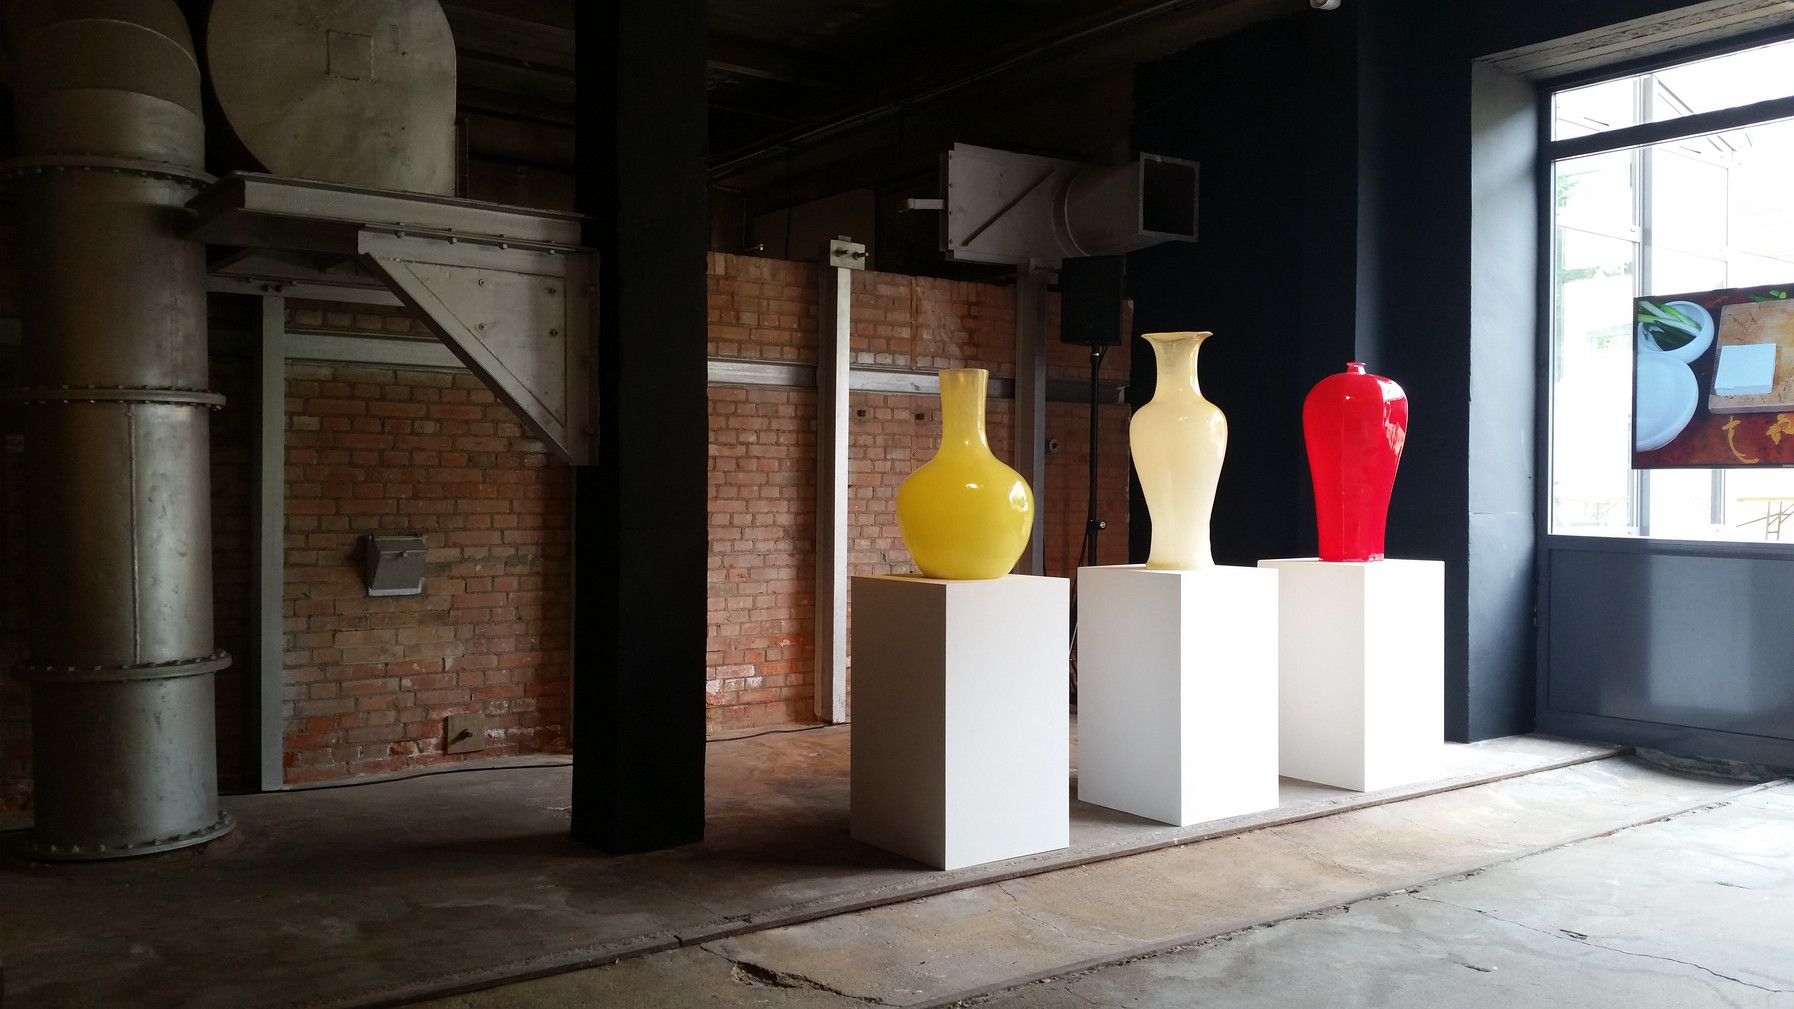 Installation view, Ceramique Contemporaine Coréenne, Bernardaud Foundation, Limoges, France